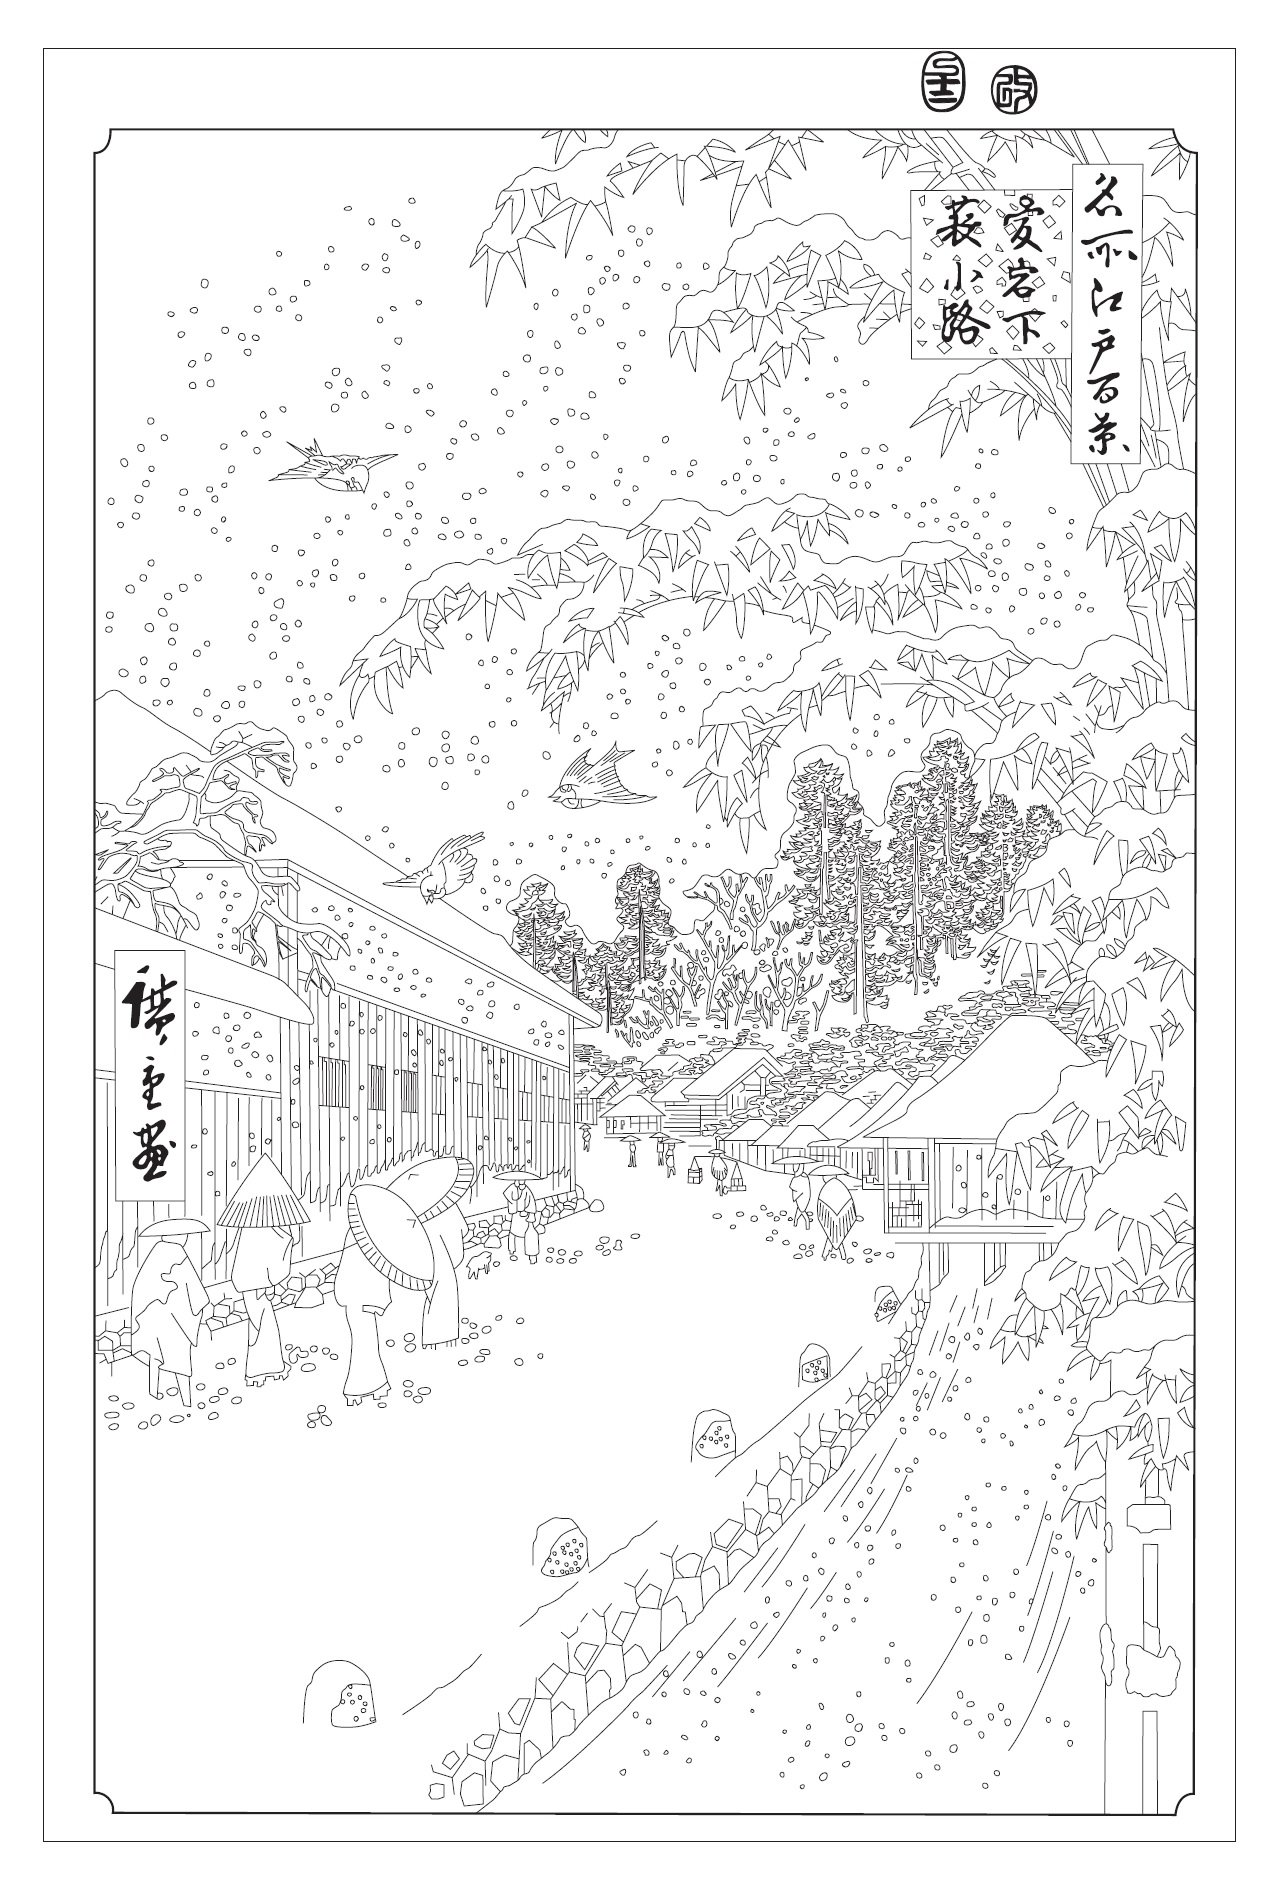 Floating World Japanese Prints Coloring Book Color Your Masterpiece Clear Mind Andrew Vigar Amazonmx Libros